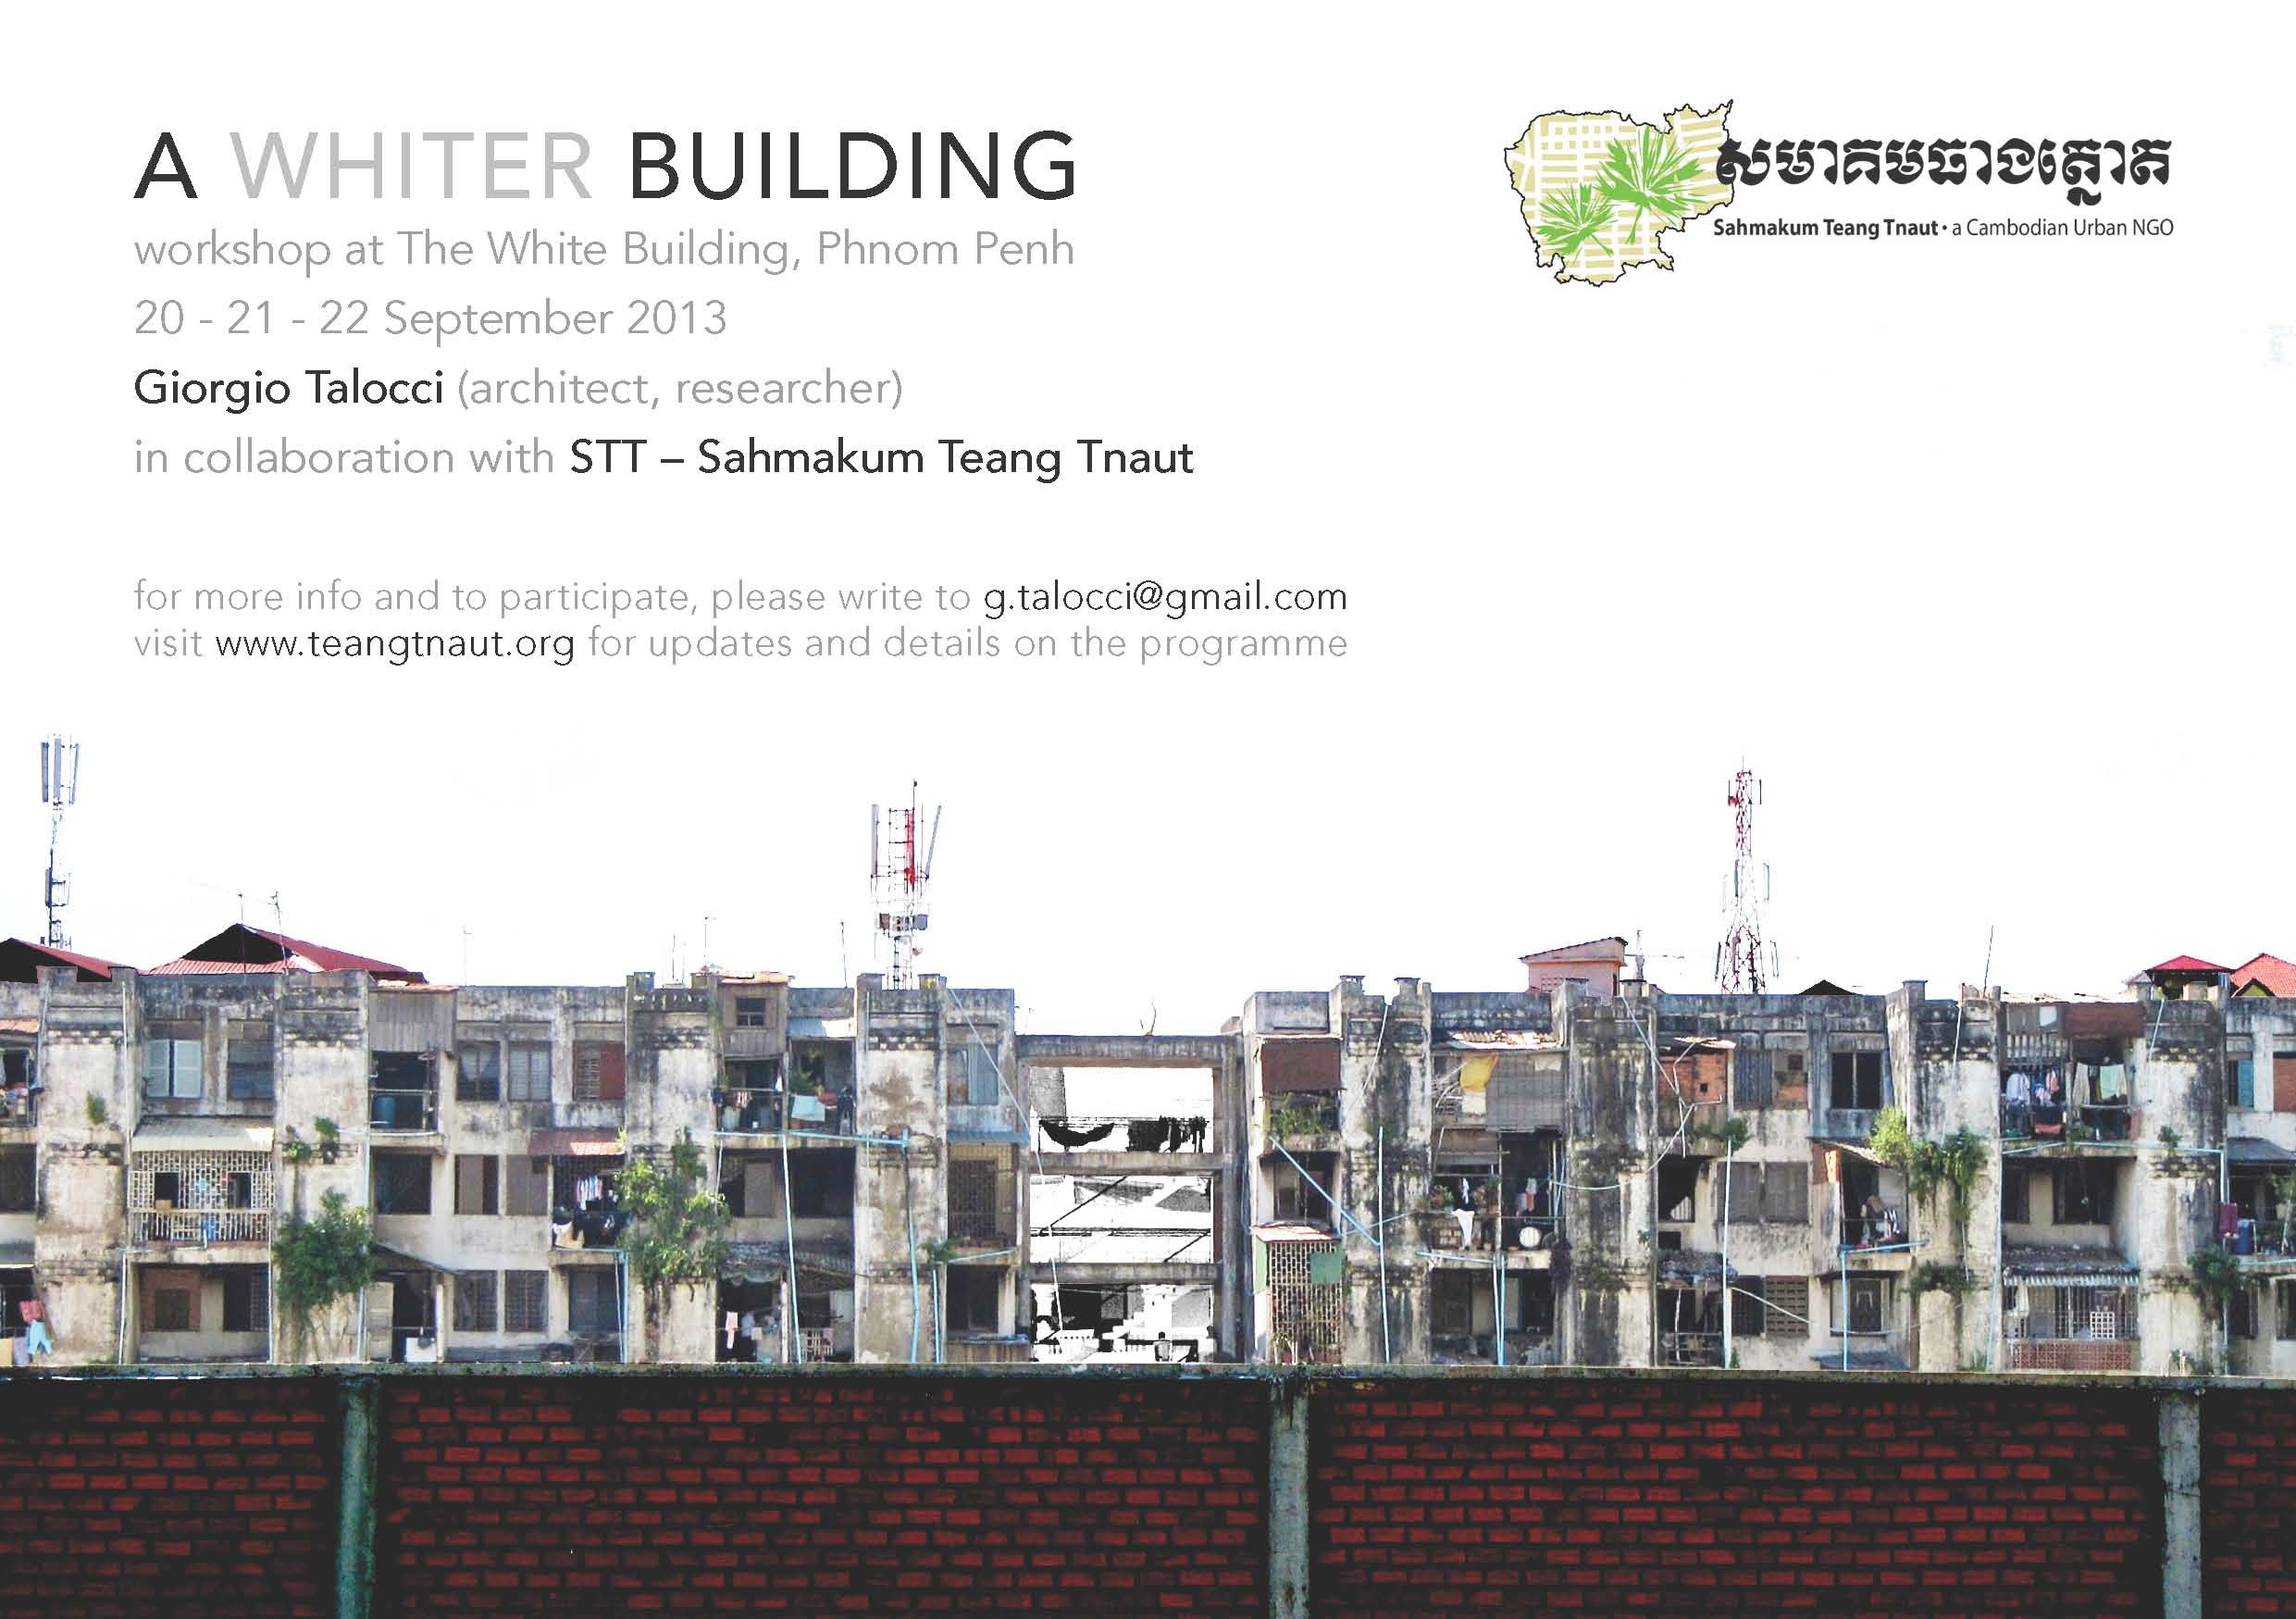 Apply Now! A Whiter Building Student Workshop